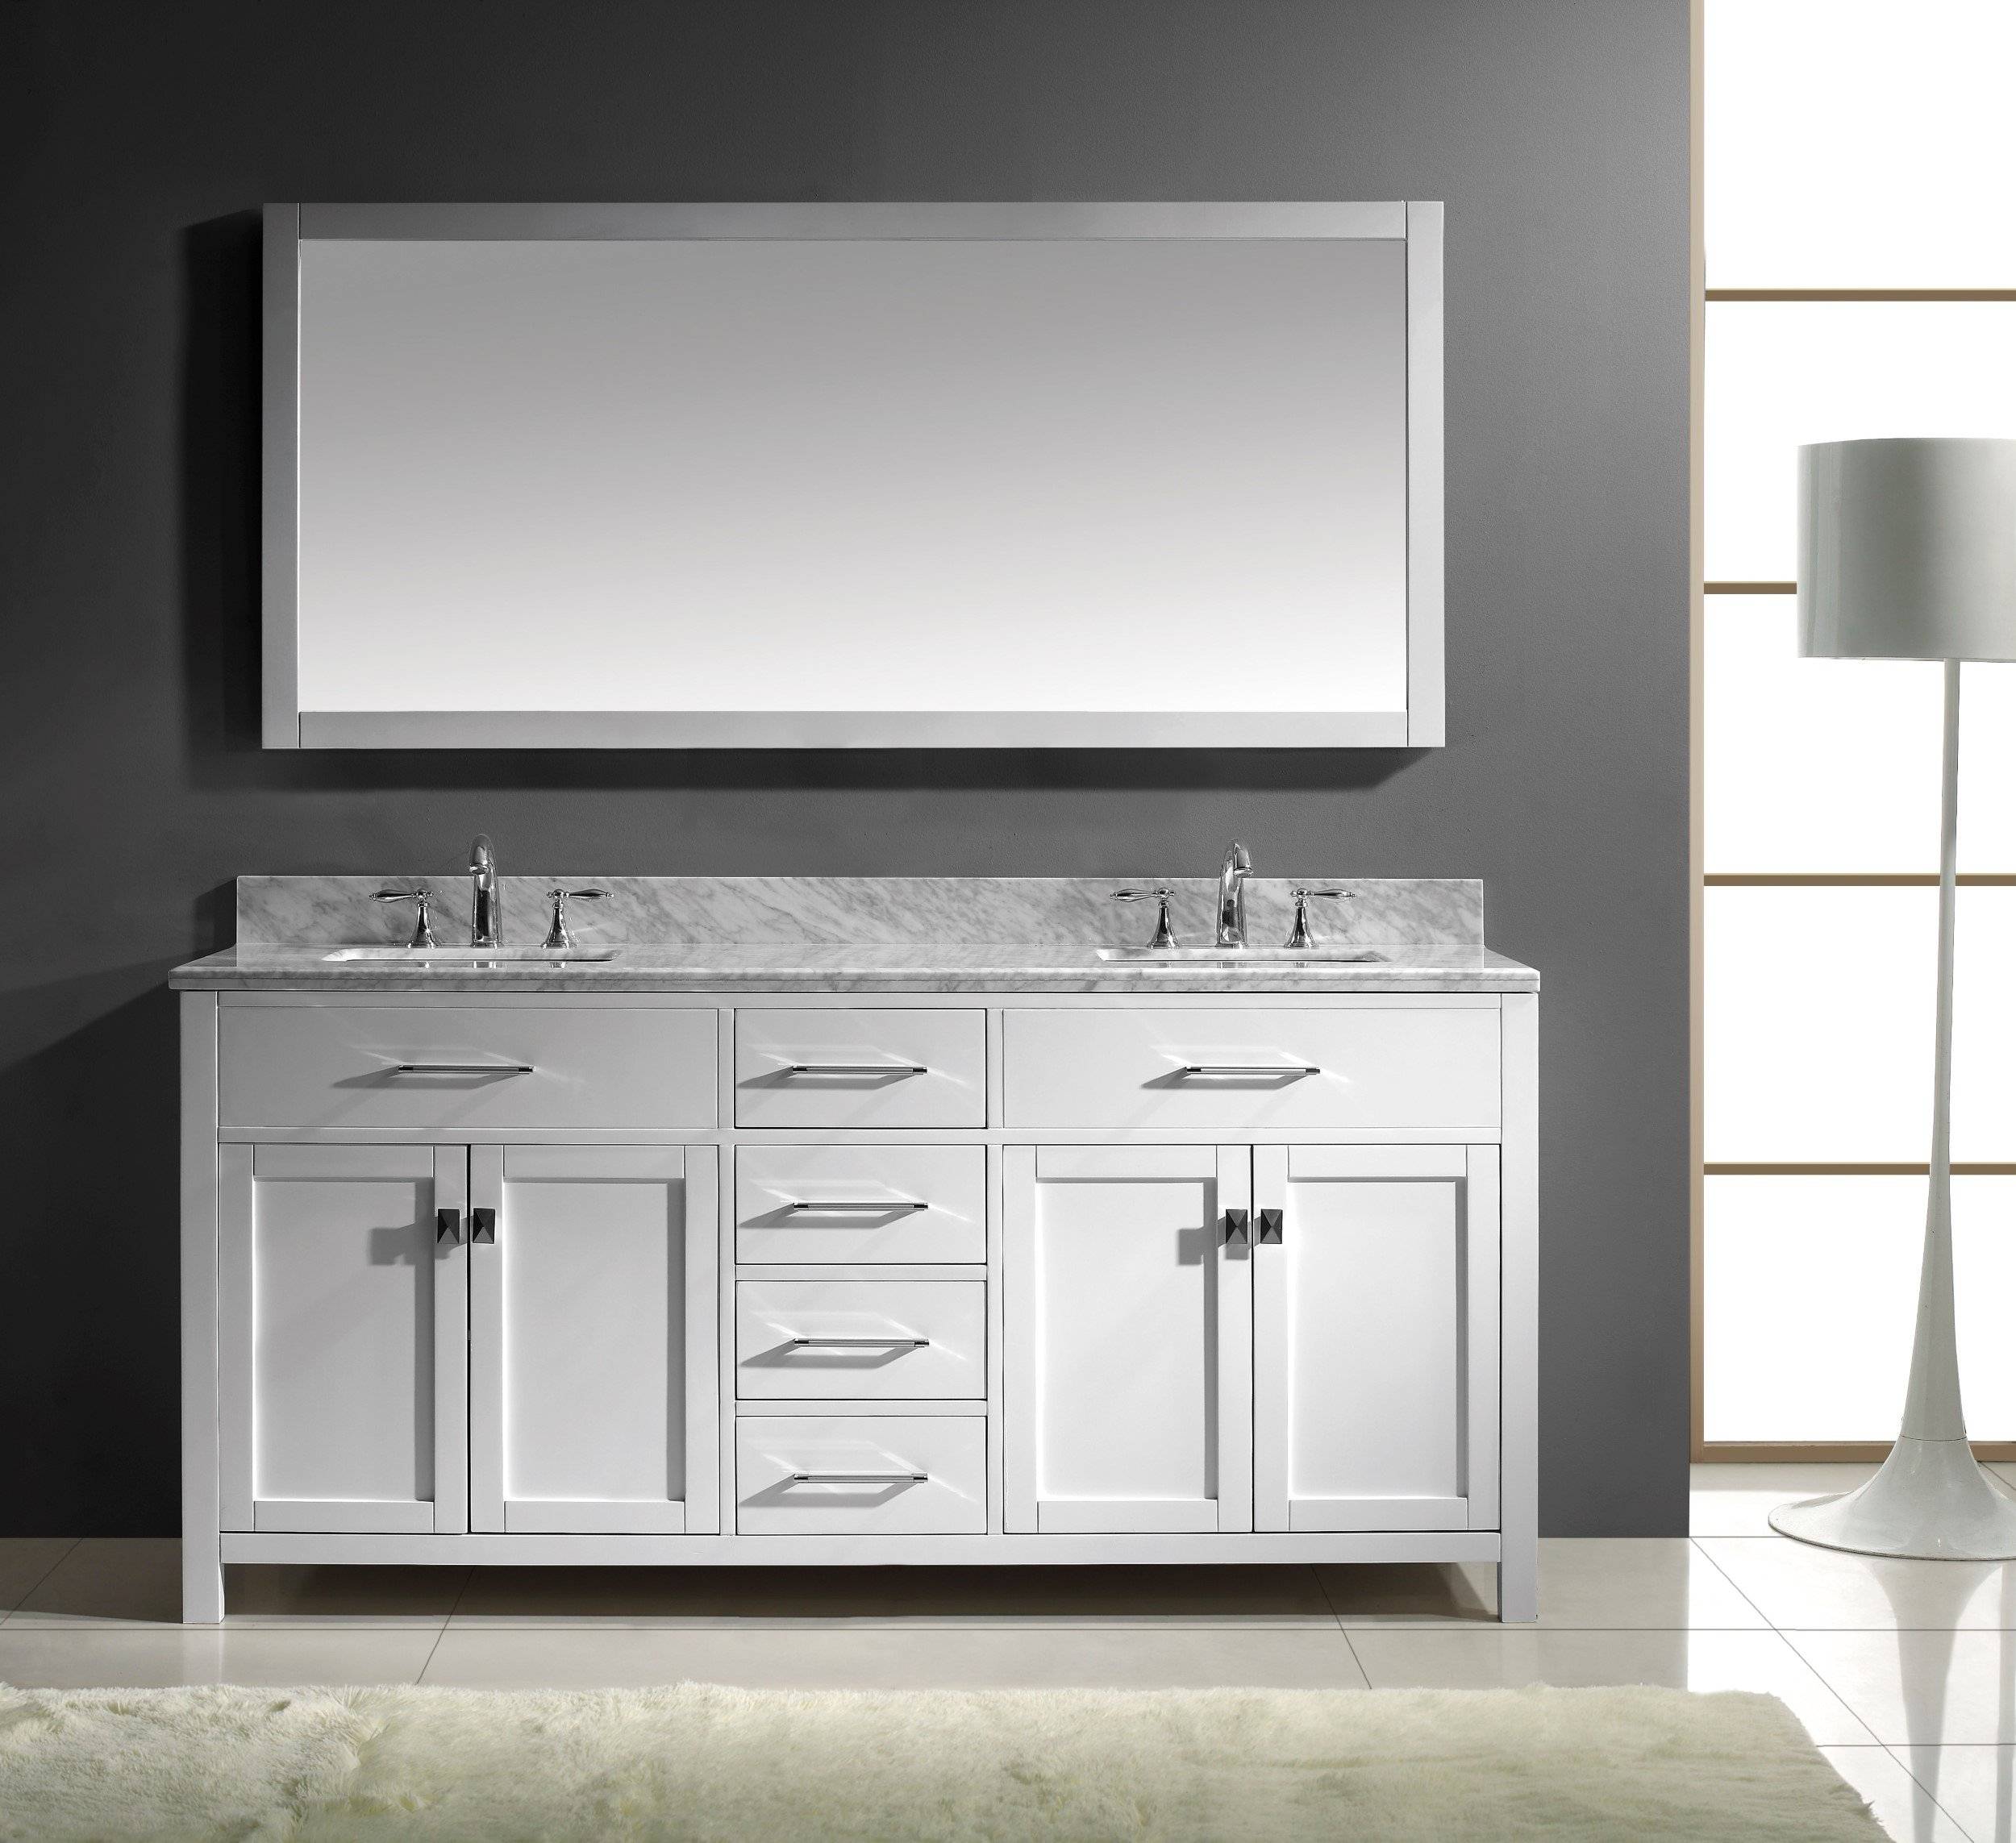 Groovy Details About Virtu Usa Caroline 72 Double Bathroom Vanity Cabinet Set White With Mirror Top Home Interior And Landscaping Ponolsignezvosmurscom